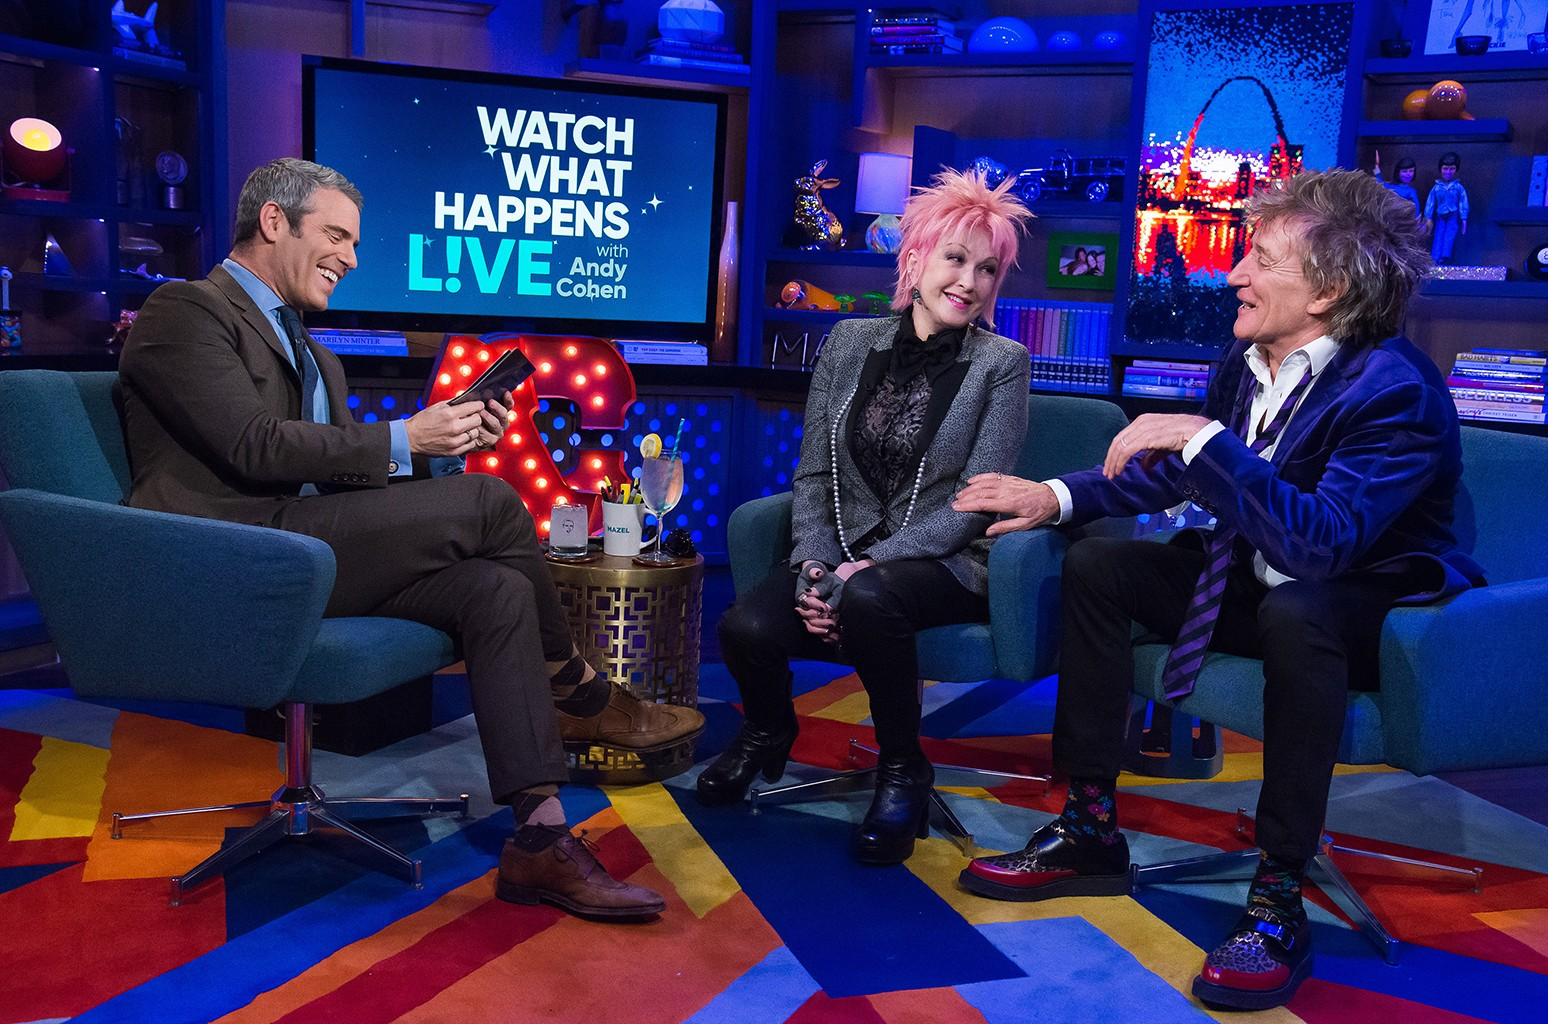 Andy Cohen, Cyndi Lauper and Rod Stewart on Watch What Happens Live.